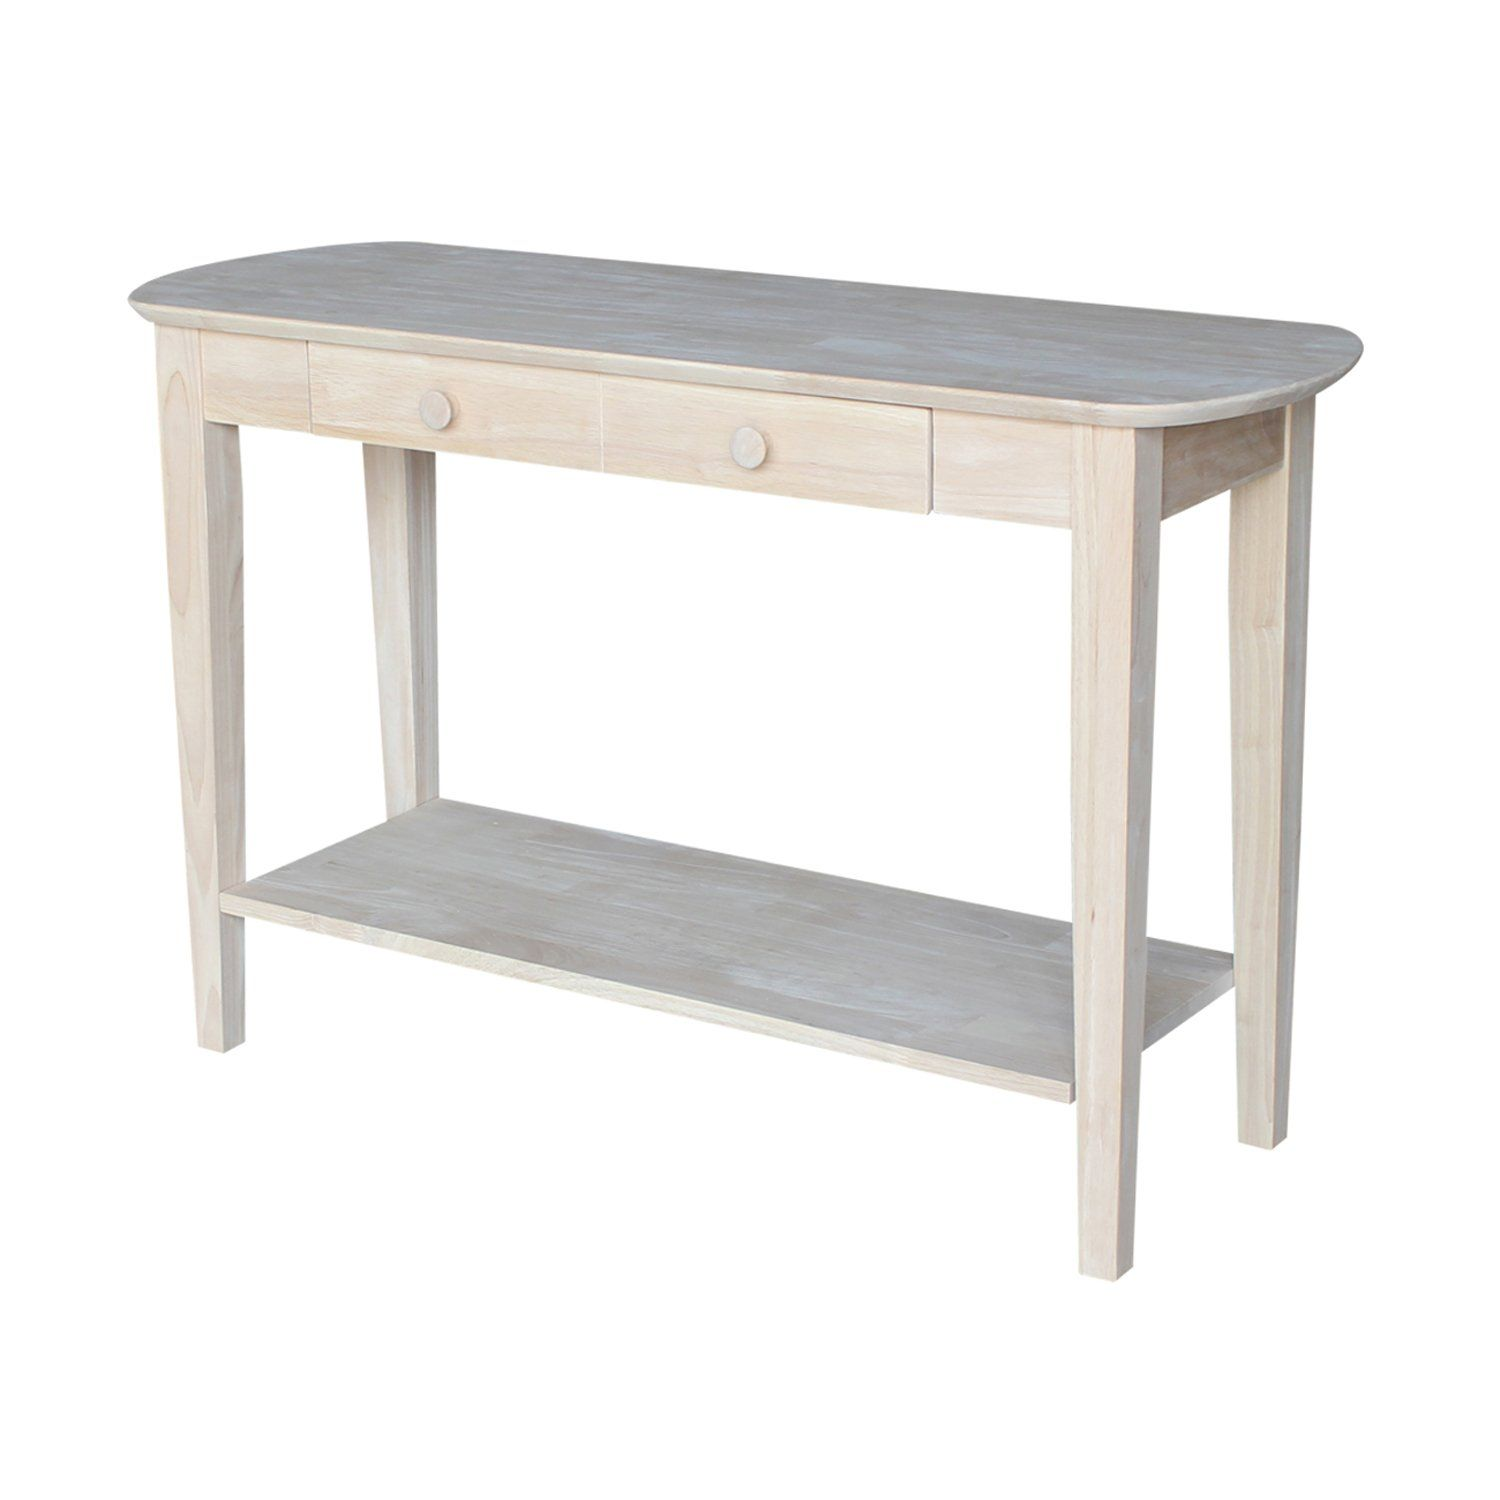 International Concepts Ot5s Phillips Oval Sofa Table Unfinished You Can Find More Details By Visiting The Image Li Sofa Table Furniture Unfinished Furniture